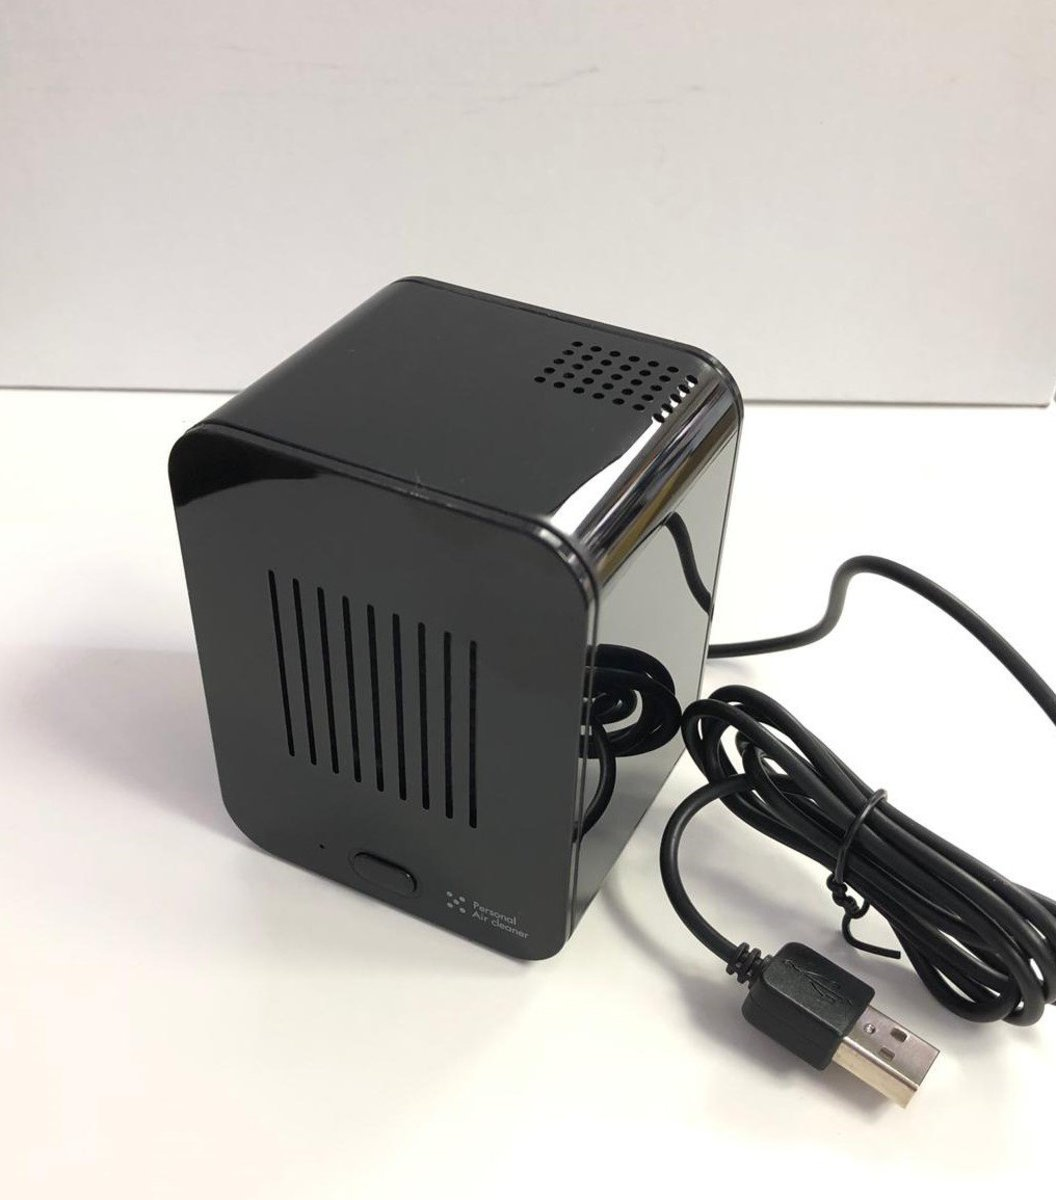 [HK Warranty] M7070 HEPA Personal USB Air Cleaner Black